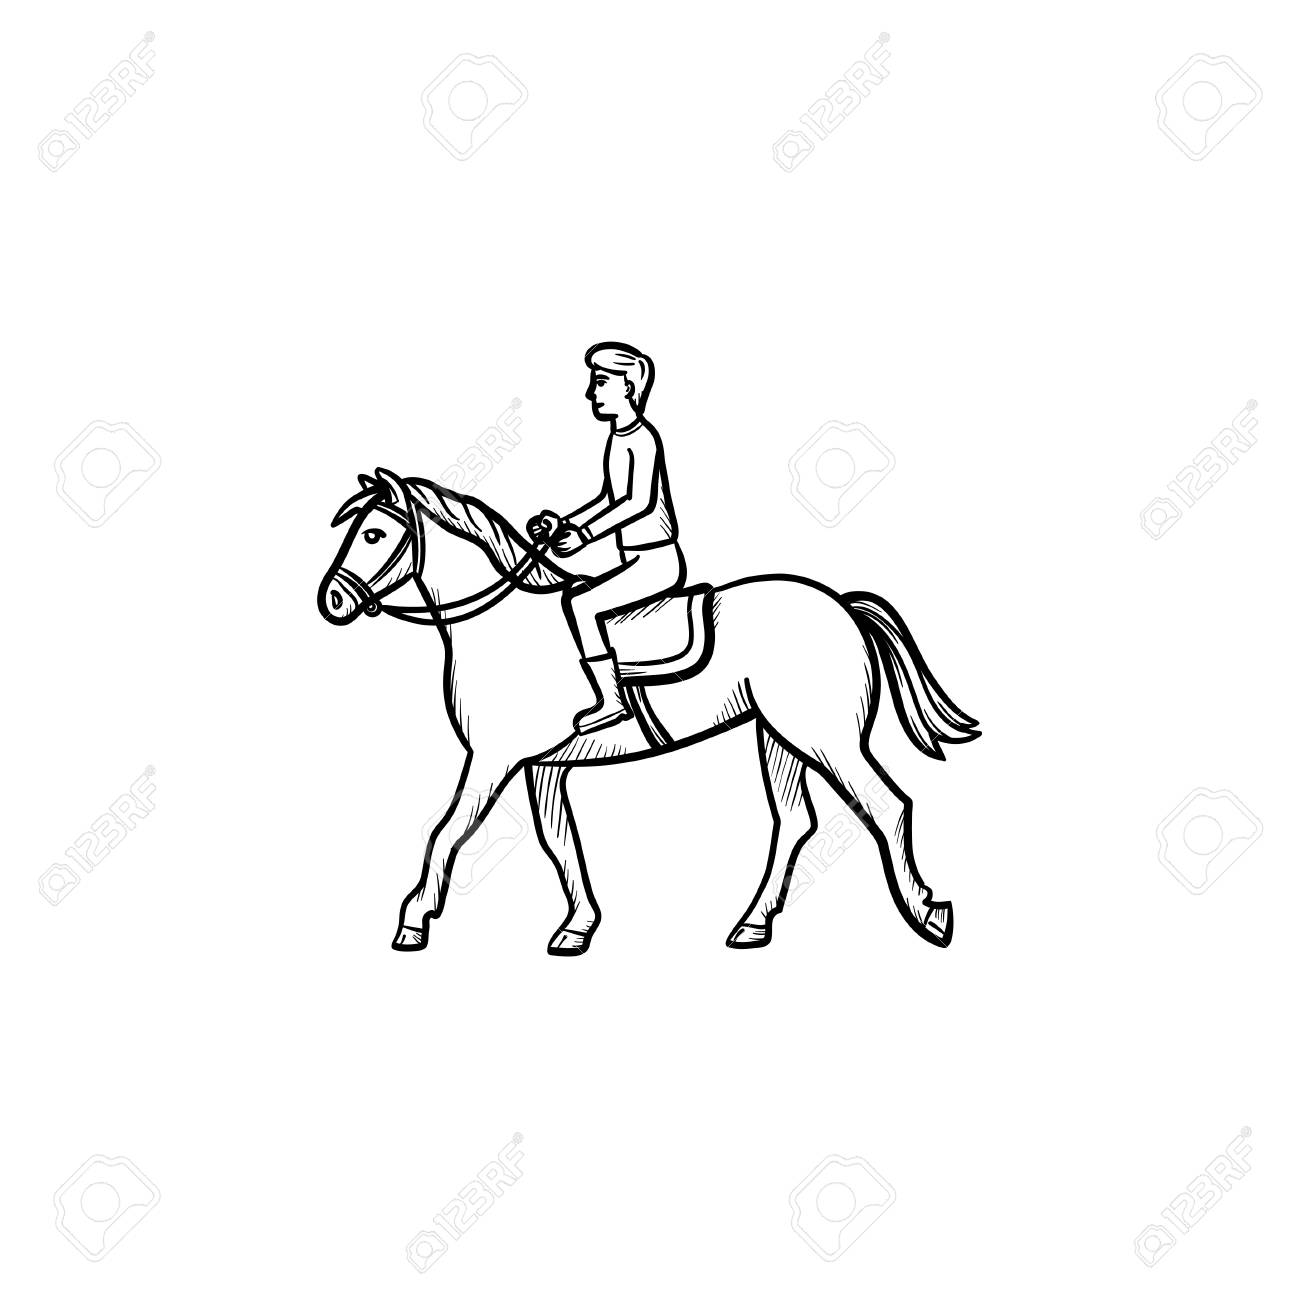 Man Riding Horse With Saddle Hand Drawn Outline Doodle Icon Royalty Free Cliparts Vectors And Stock Illustration Image 103611442